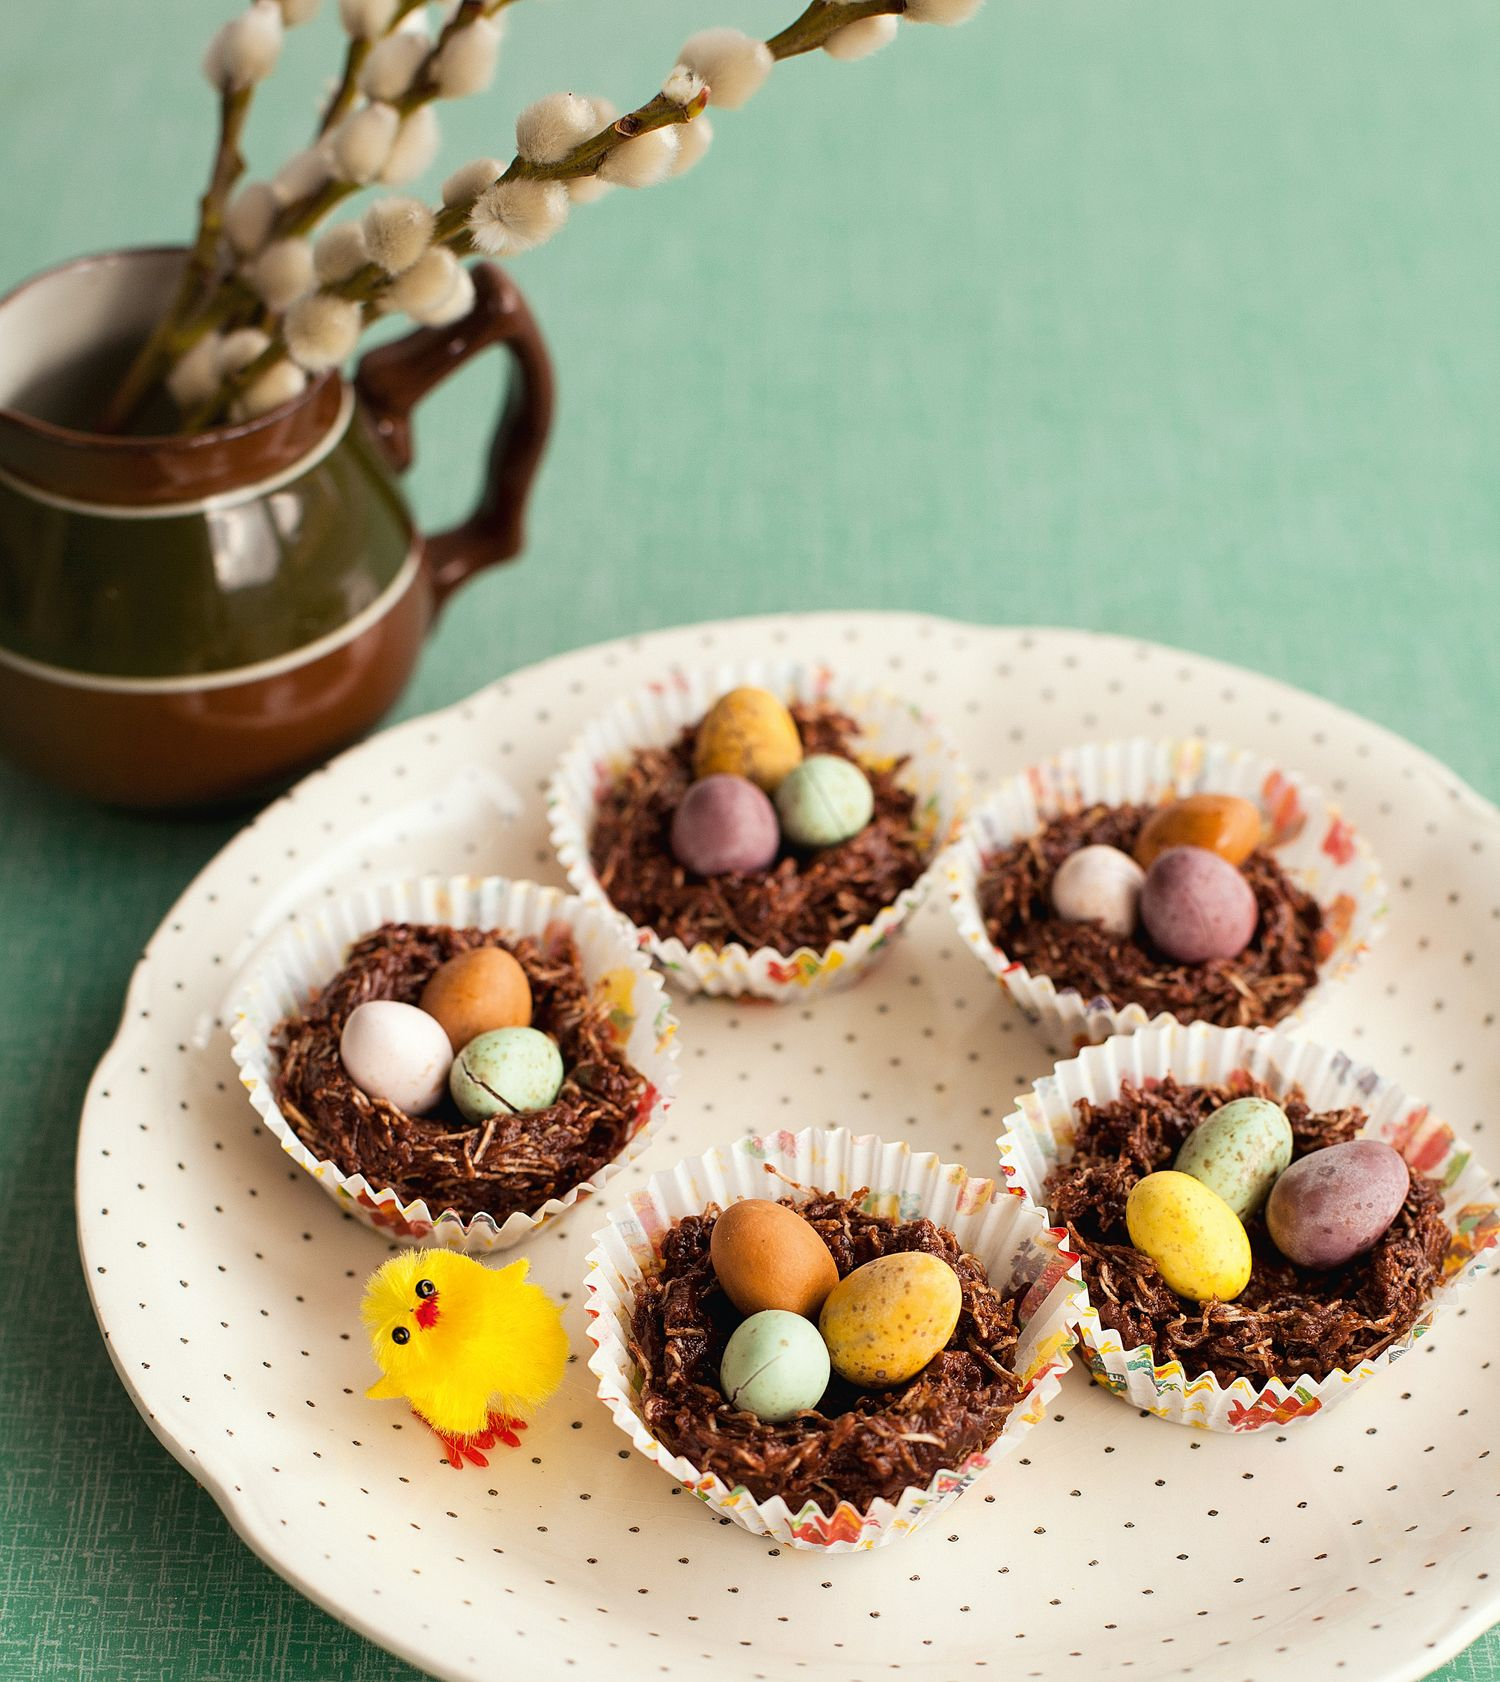 Basic Rules Of Redevelopment : Easter Nests With Shredded Wheat - home-concepts.top